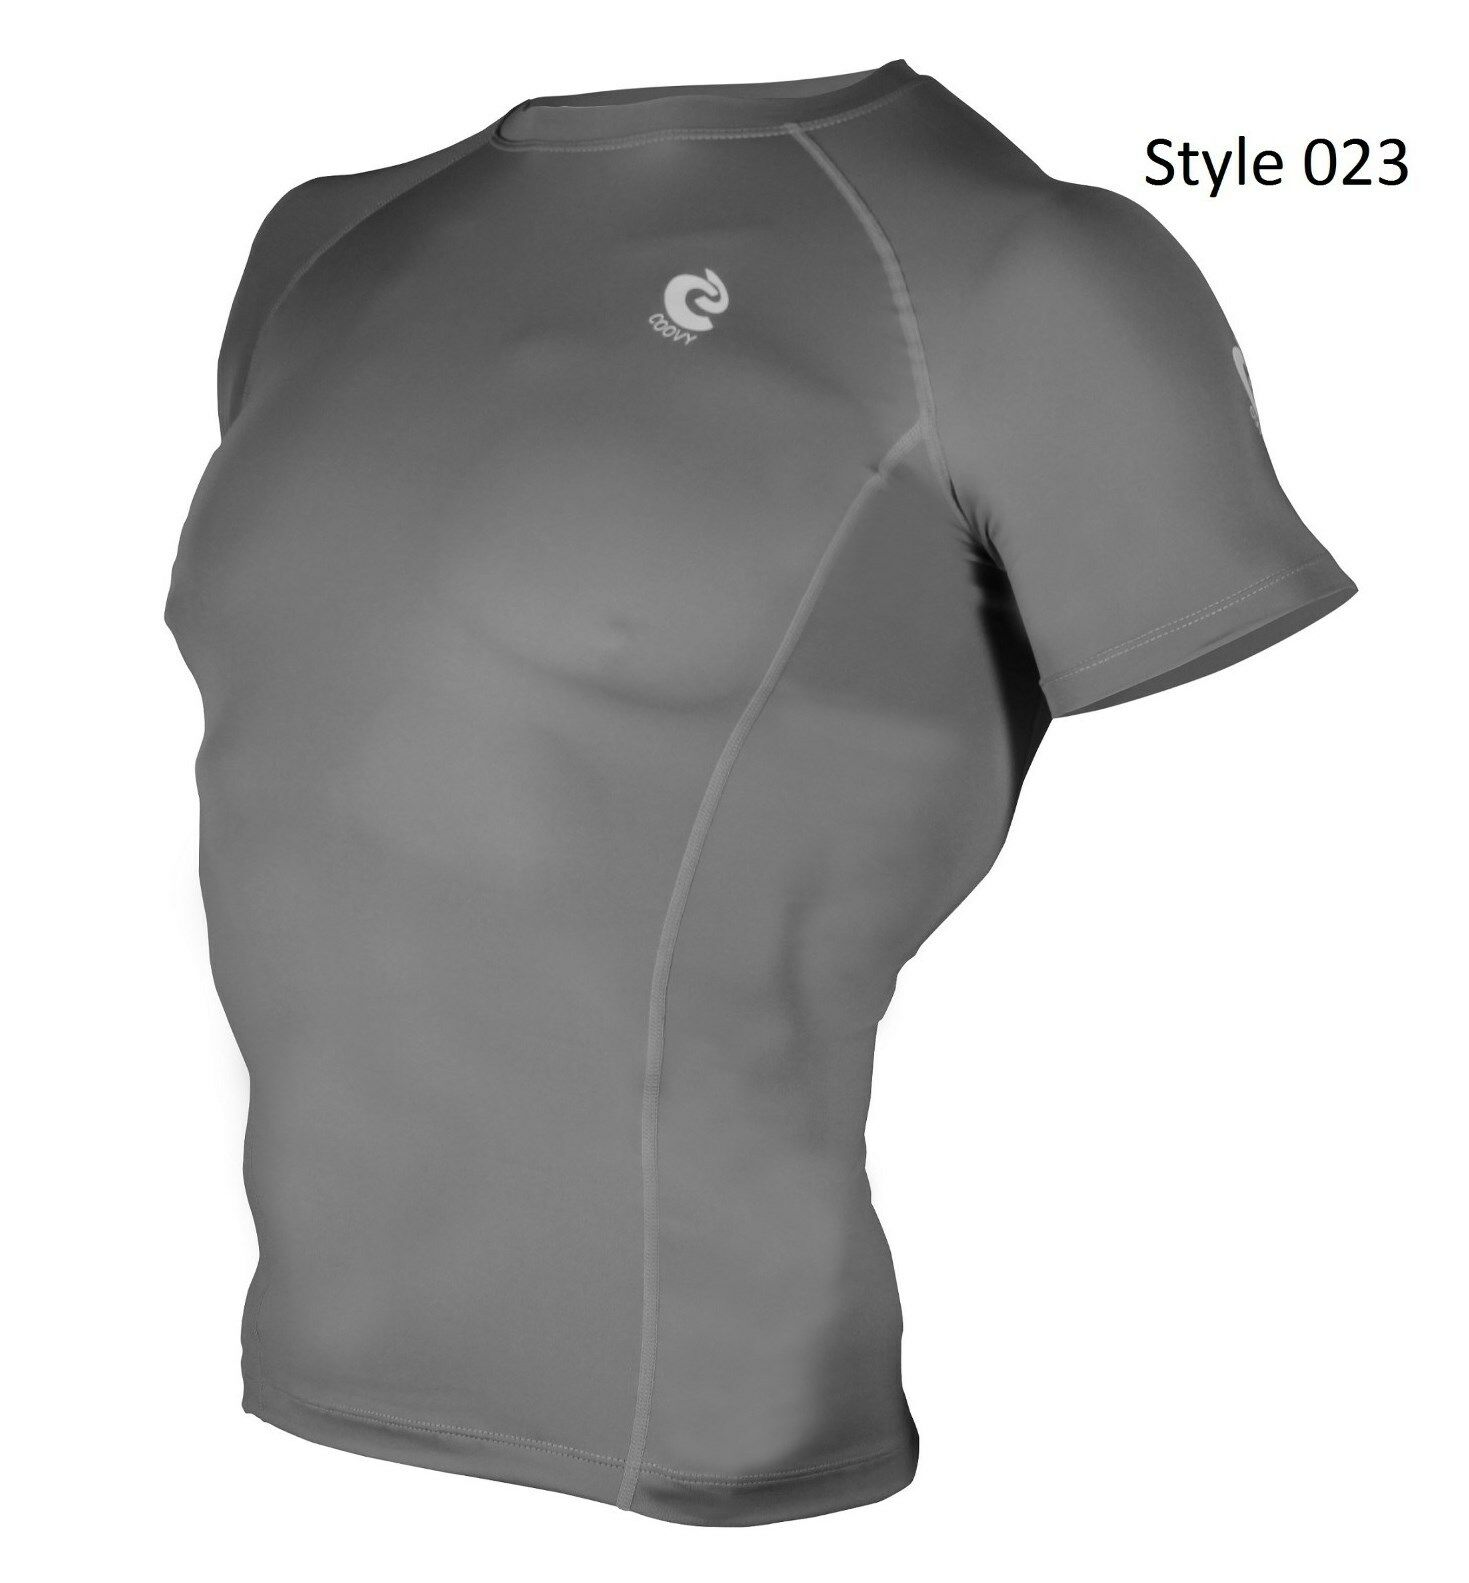 023 Grey Short Sleeve Shirt